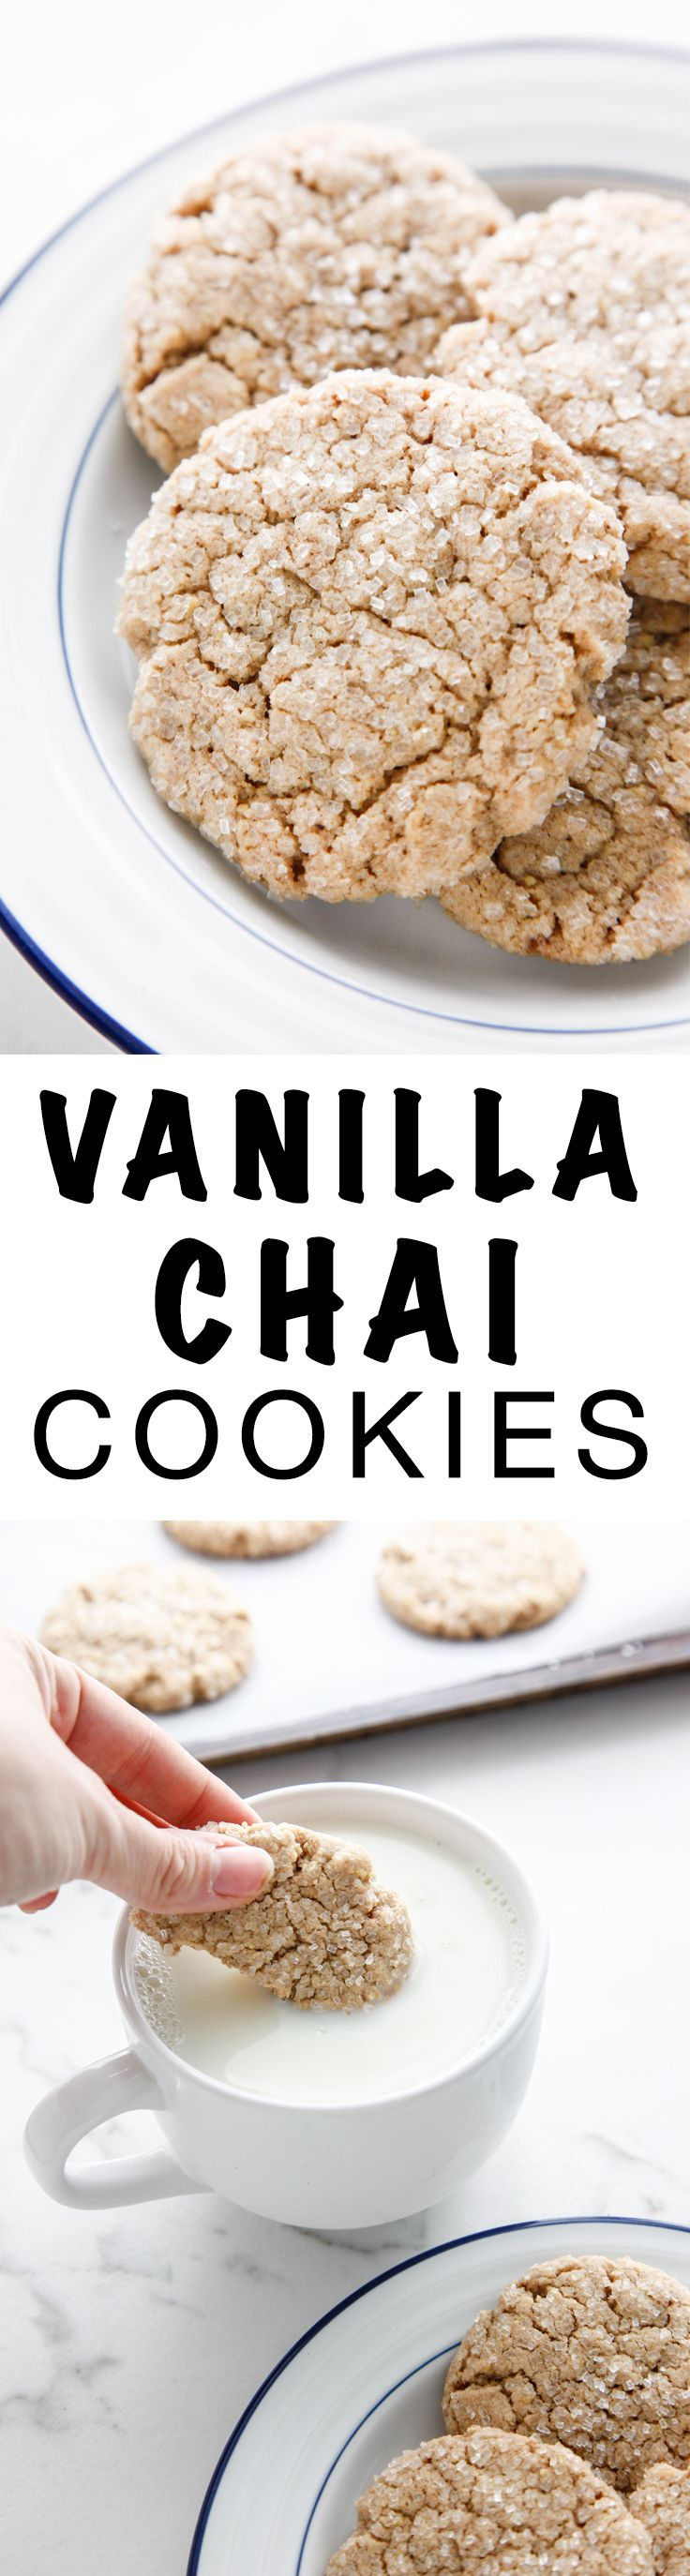 Vanilla Chai Cookies are perfect for the holidays! You will absolutely love these tasty cookies! via @thebrooklyncook